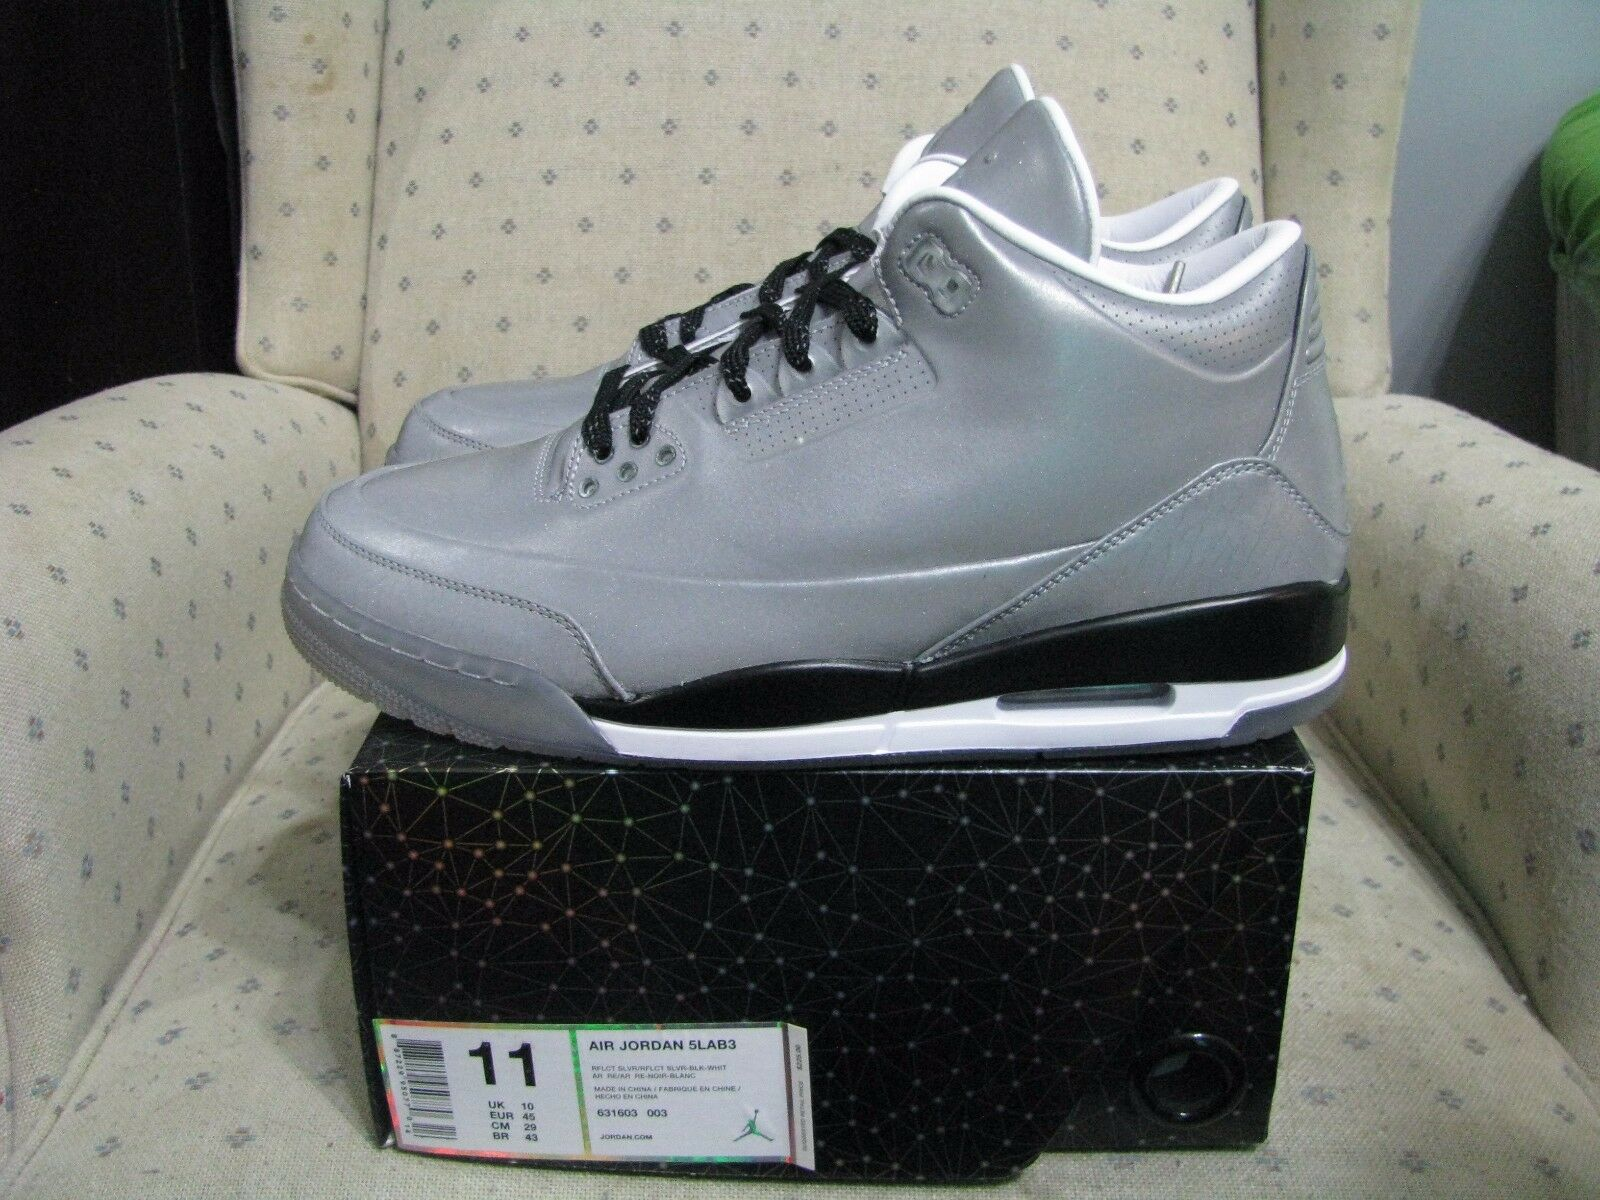 cheaper faf2f 10039 ... cheapest nike air jordan retro 3 5lab3 reflective plata gris cemento 11  rojo true azul sz